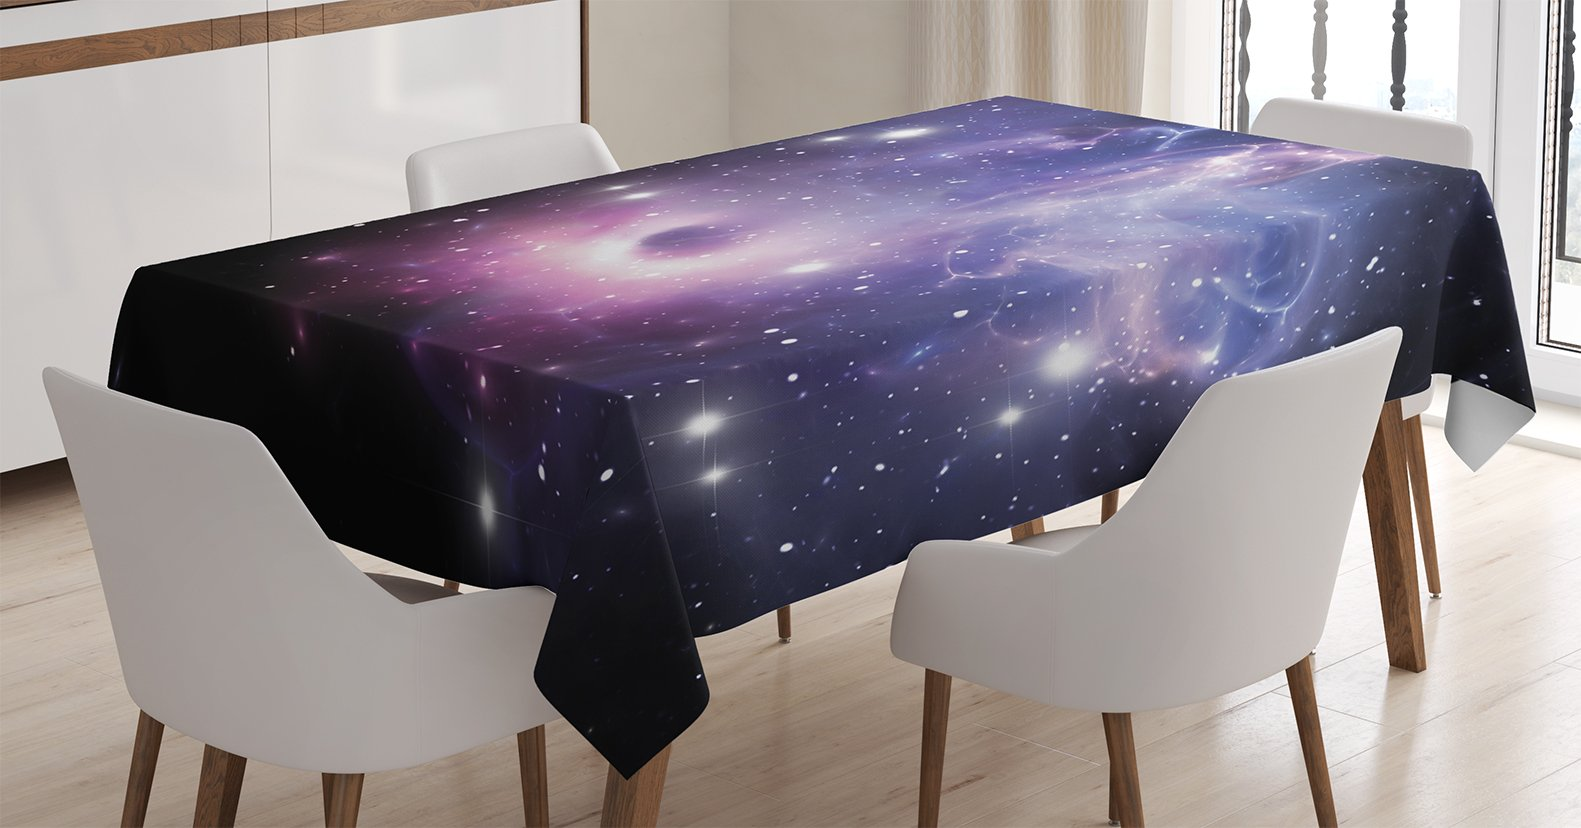 Ambesonne Space Decorations Tablecloth, Black Hole in the Nebula Gas Cloud in Outer Space Universe Astro Solar System Print, Rectangular Table Cover for Dining Room Kitchen, 60x84 Inches, Navy Purple